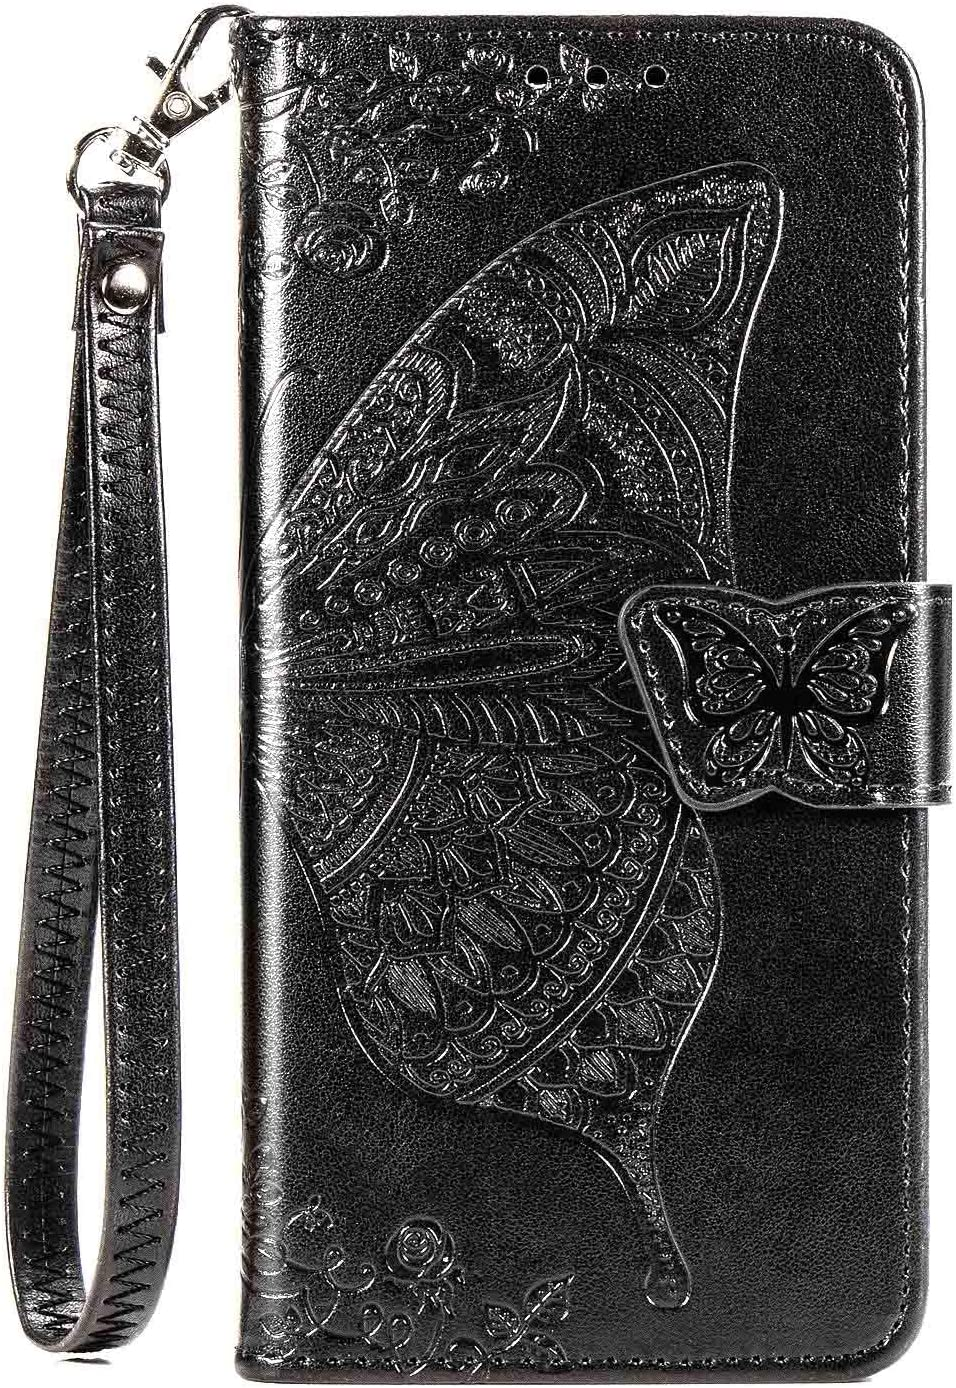 CaseHQ Compatible with iPhone 12 Case 6.1 inch,iPhone 12 Pro Case 6.1 inch (2020),Wallet Case for Women and Girls,Premium Strap with Card Holder,3D Embossed Butterfly,Pu Leather Flip-Purple